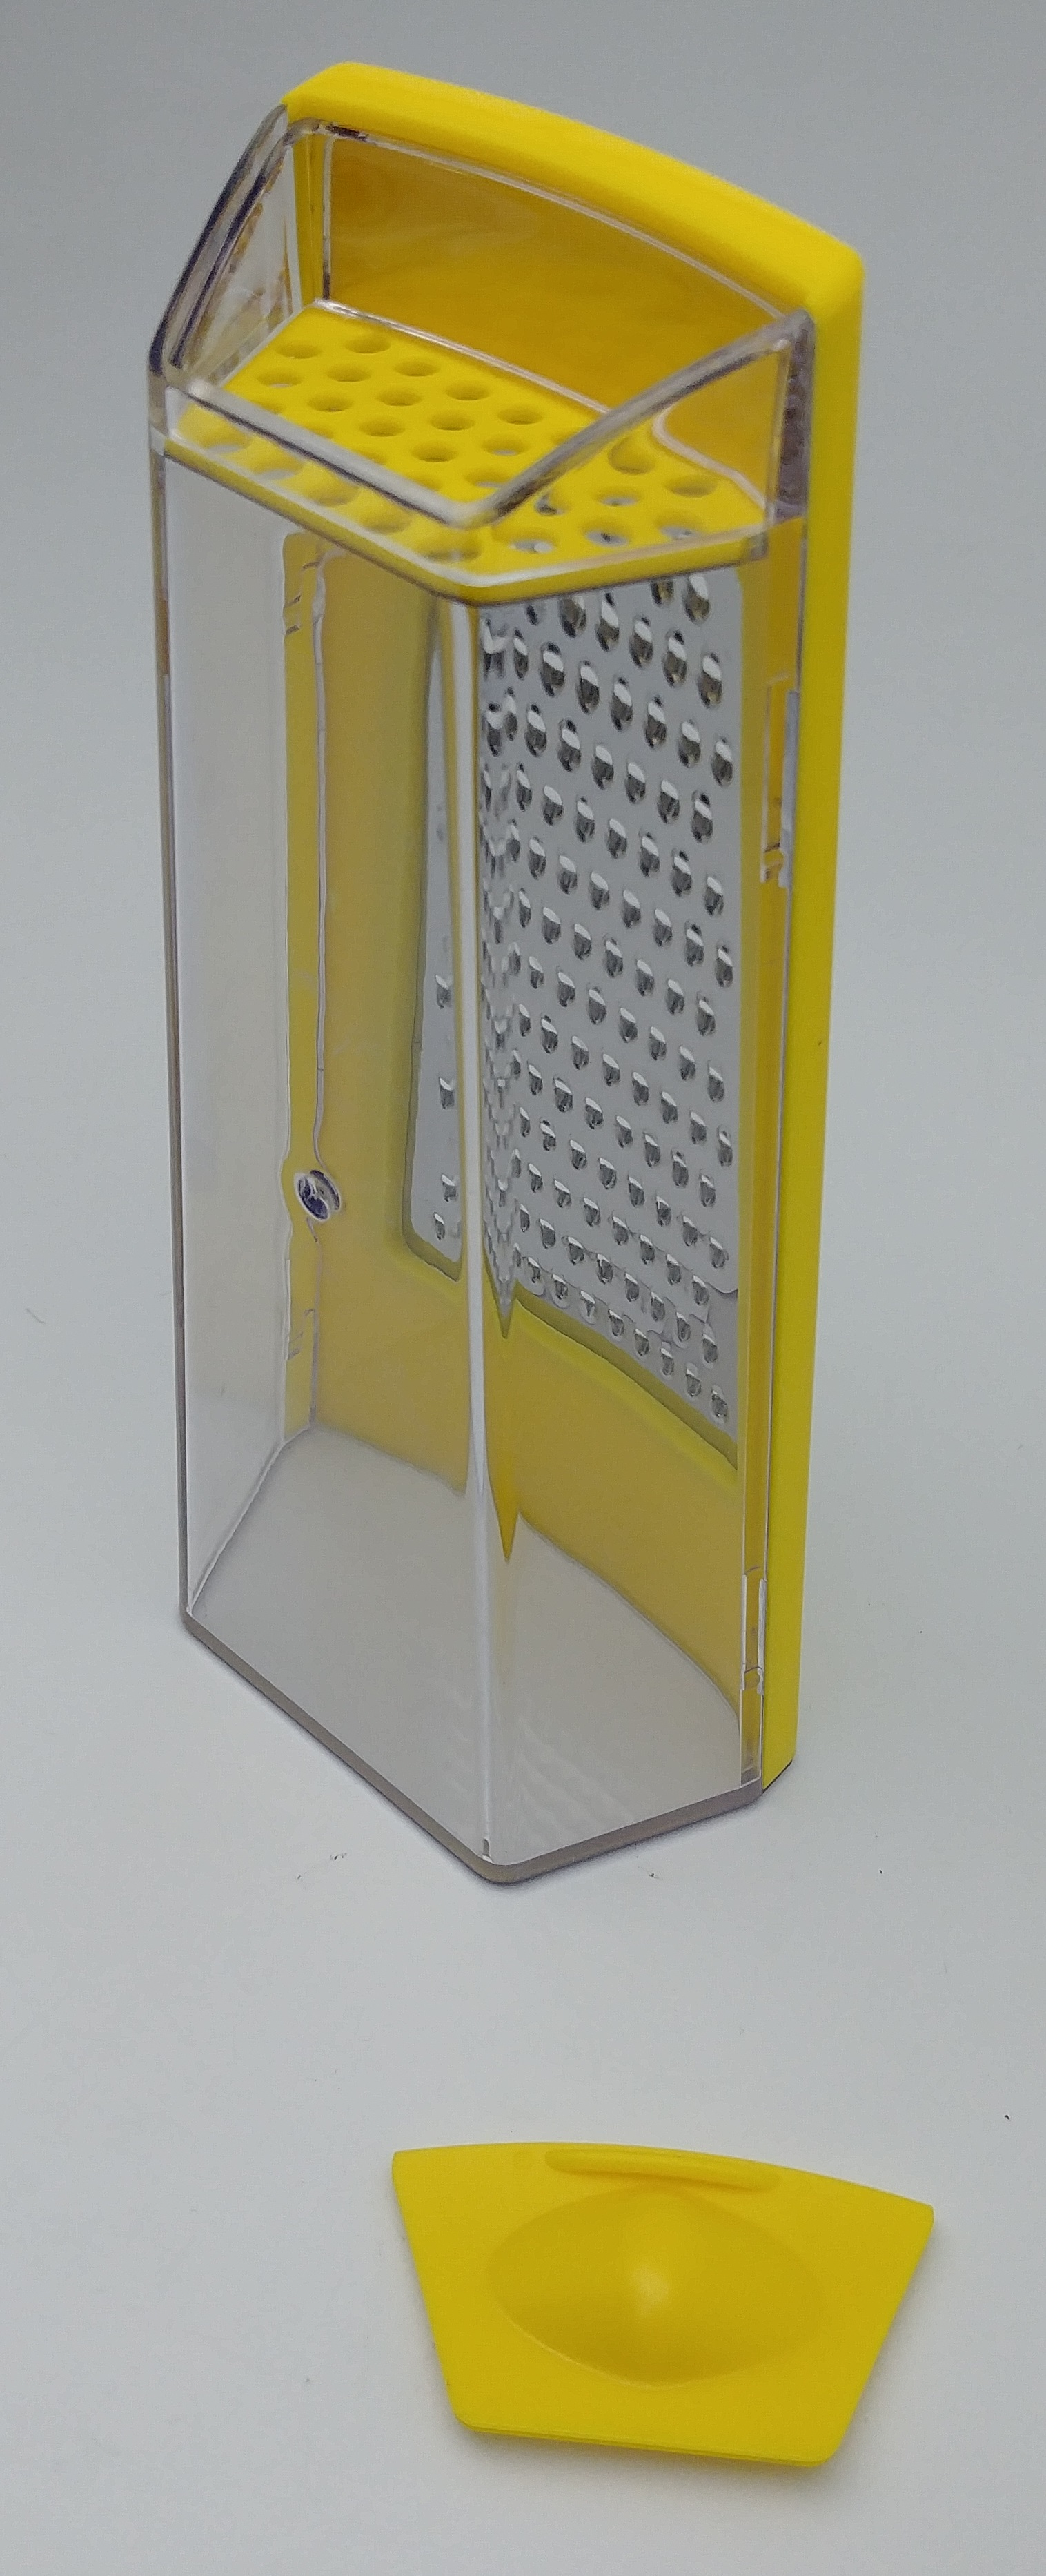 Grater with storage